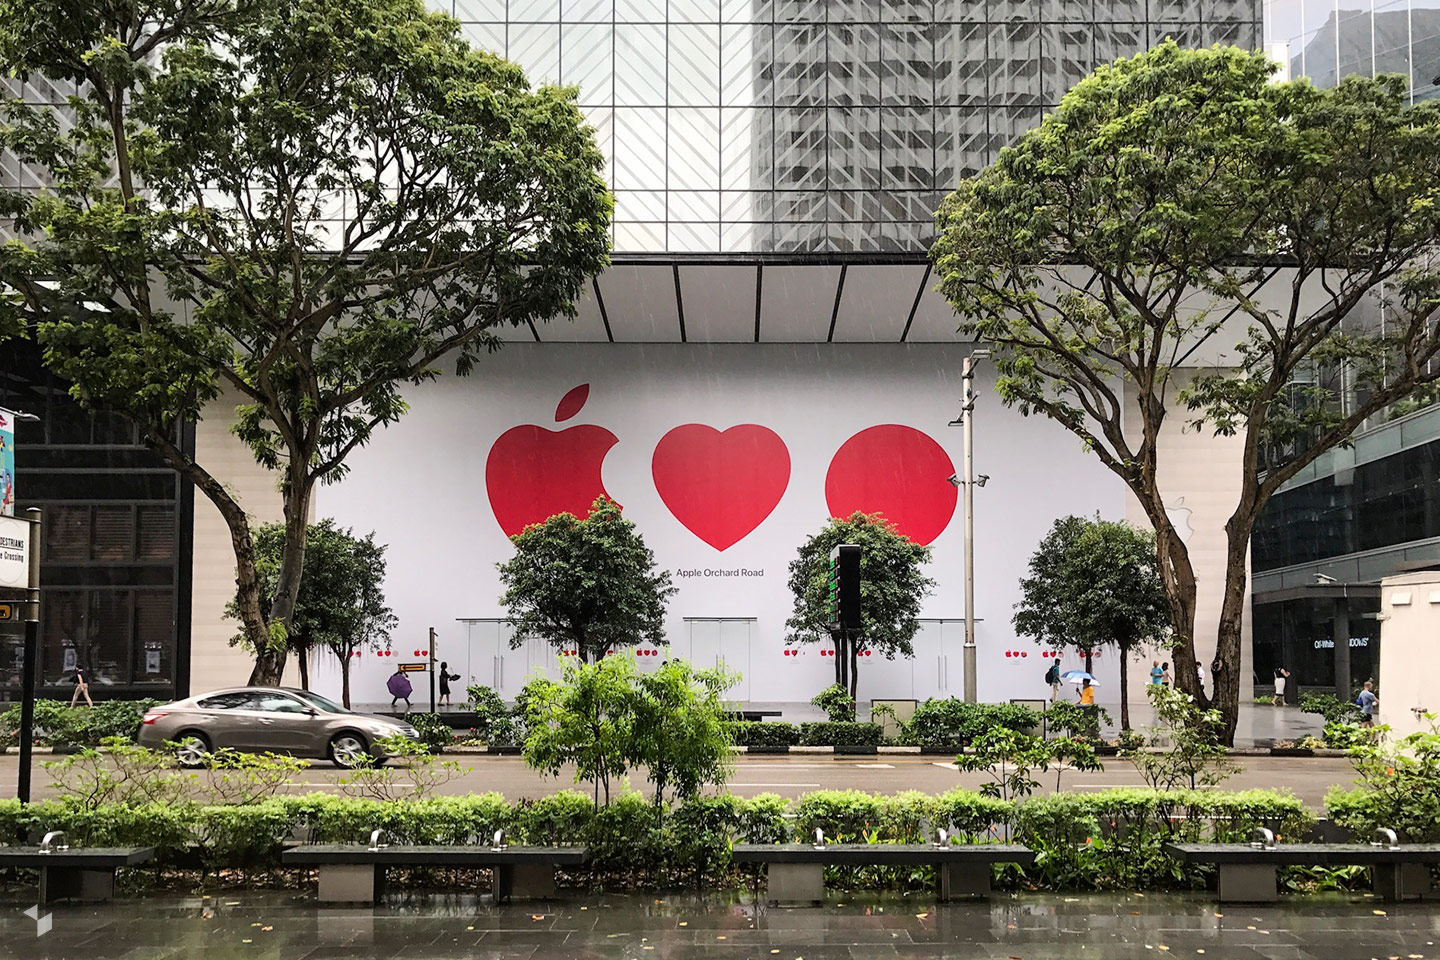 Apple Orchard Road in Singapur eröffnete am 27. Mai 2017